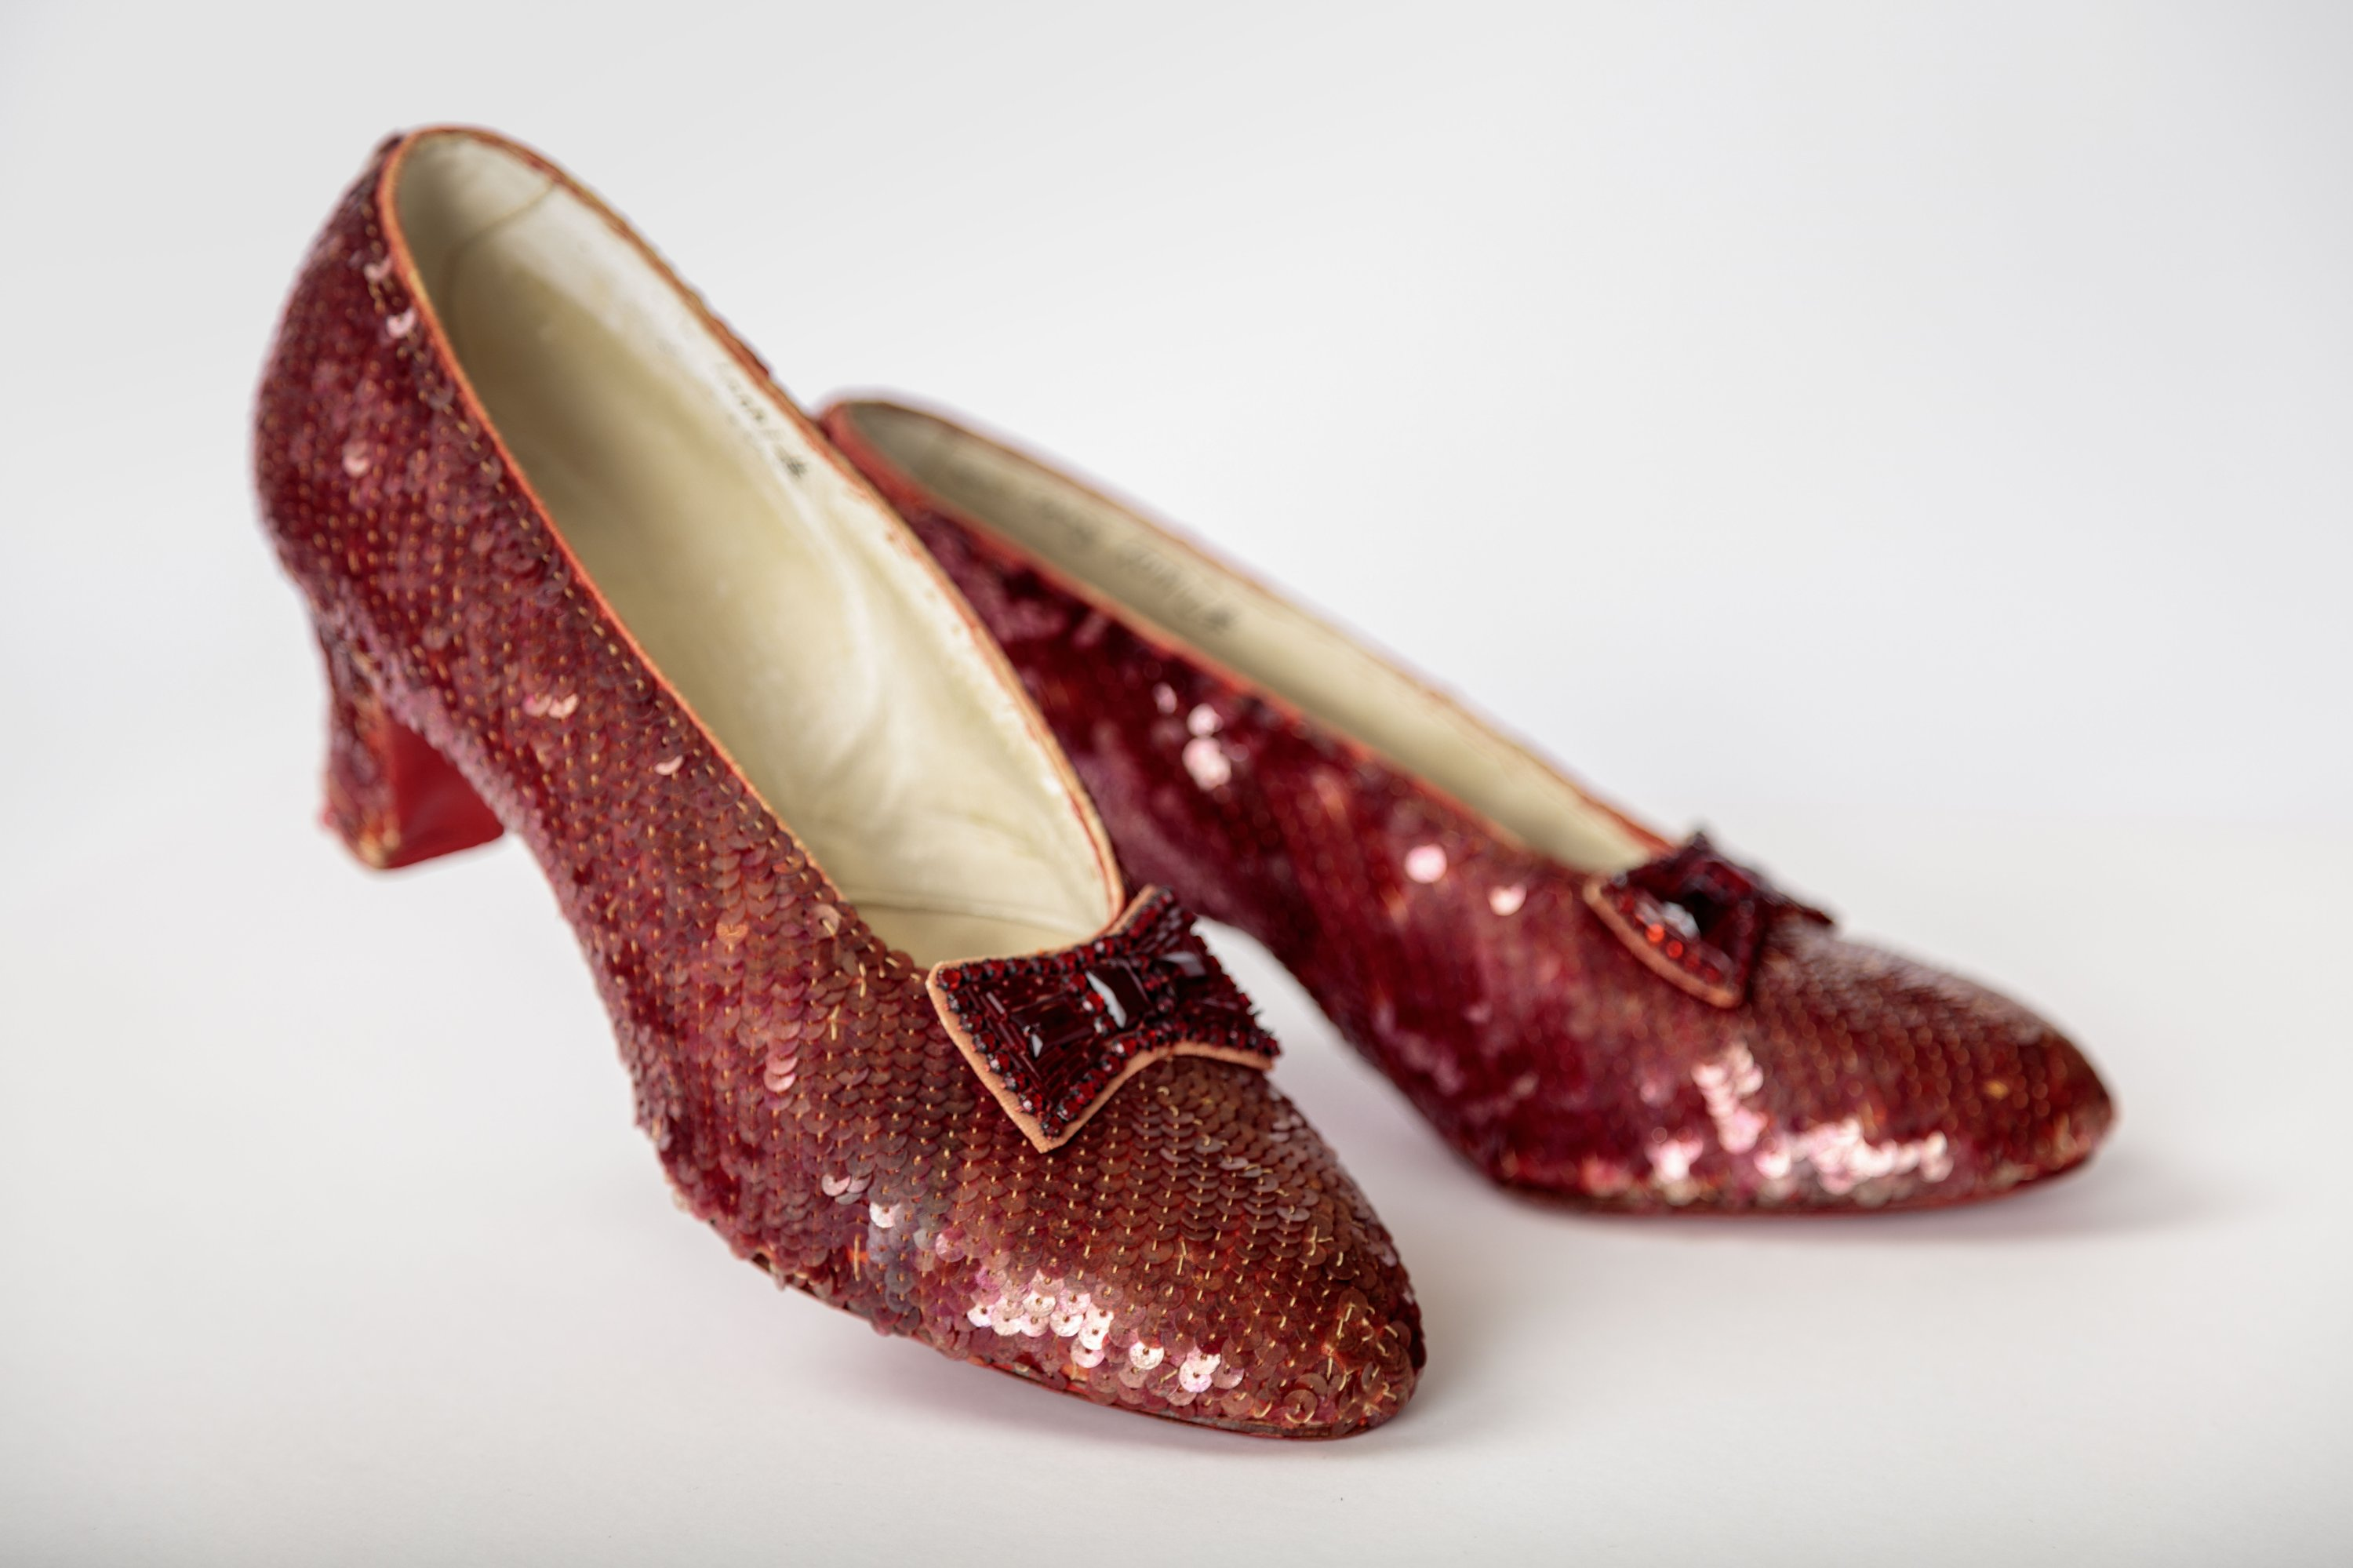 Dorothy's red shoes from the 1939 classic 'Wizard of Oz' are part of the exhibits in the new Academy Museum of Motion Pictures. (DPA Photo)